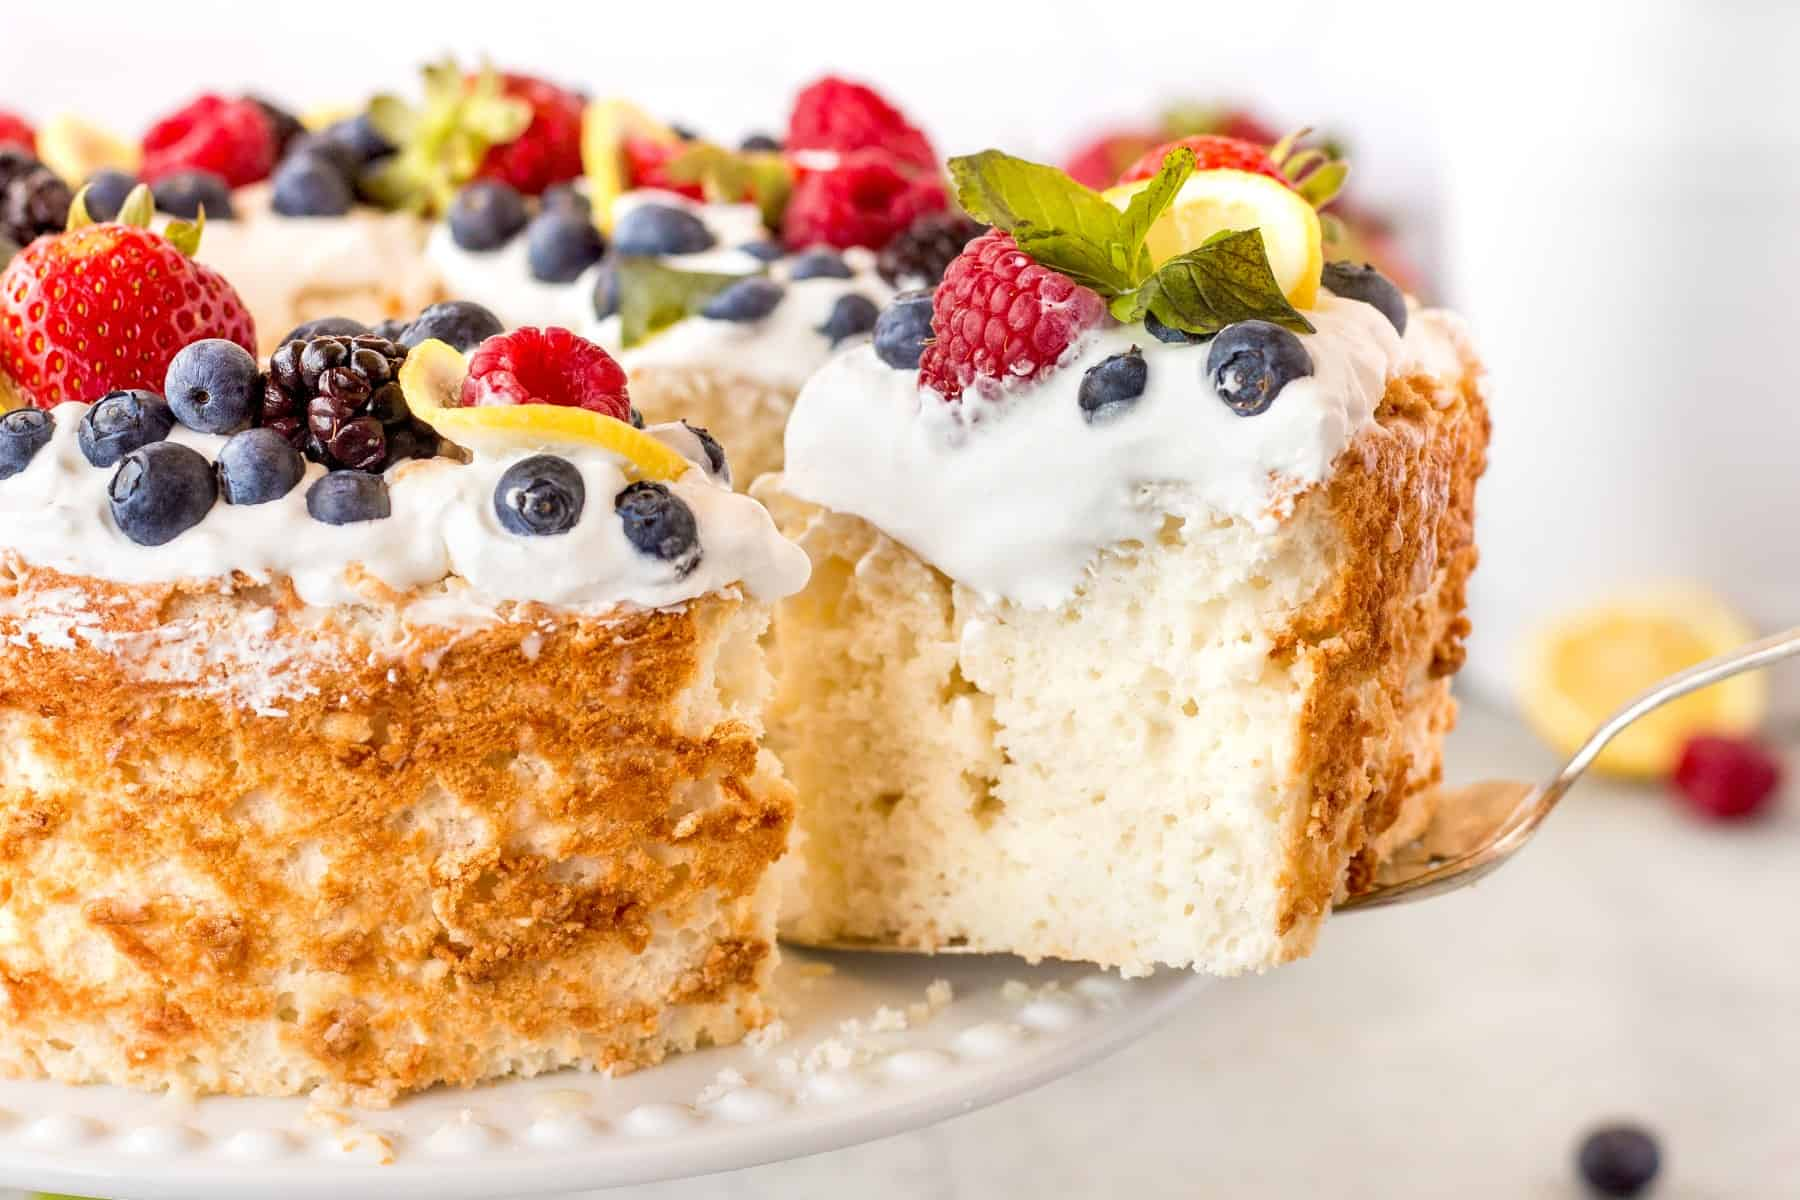 Taking a slice with a cake server from an angel food cake